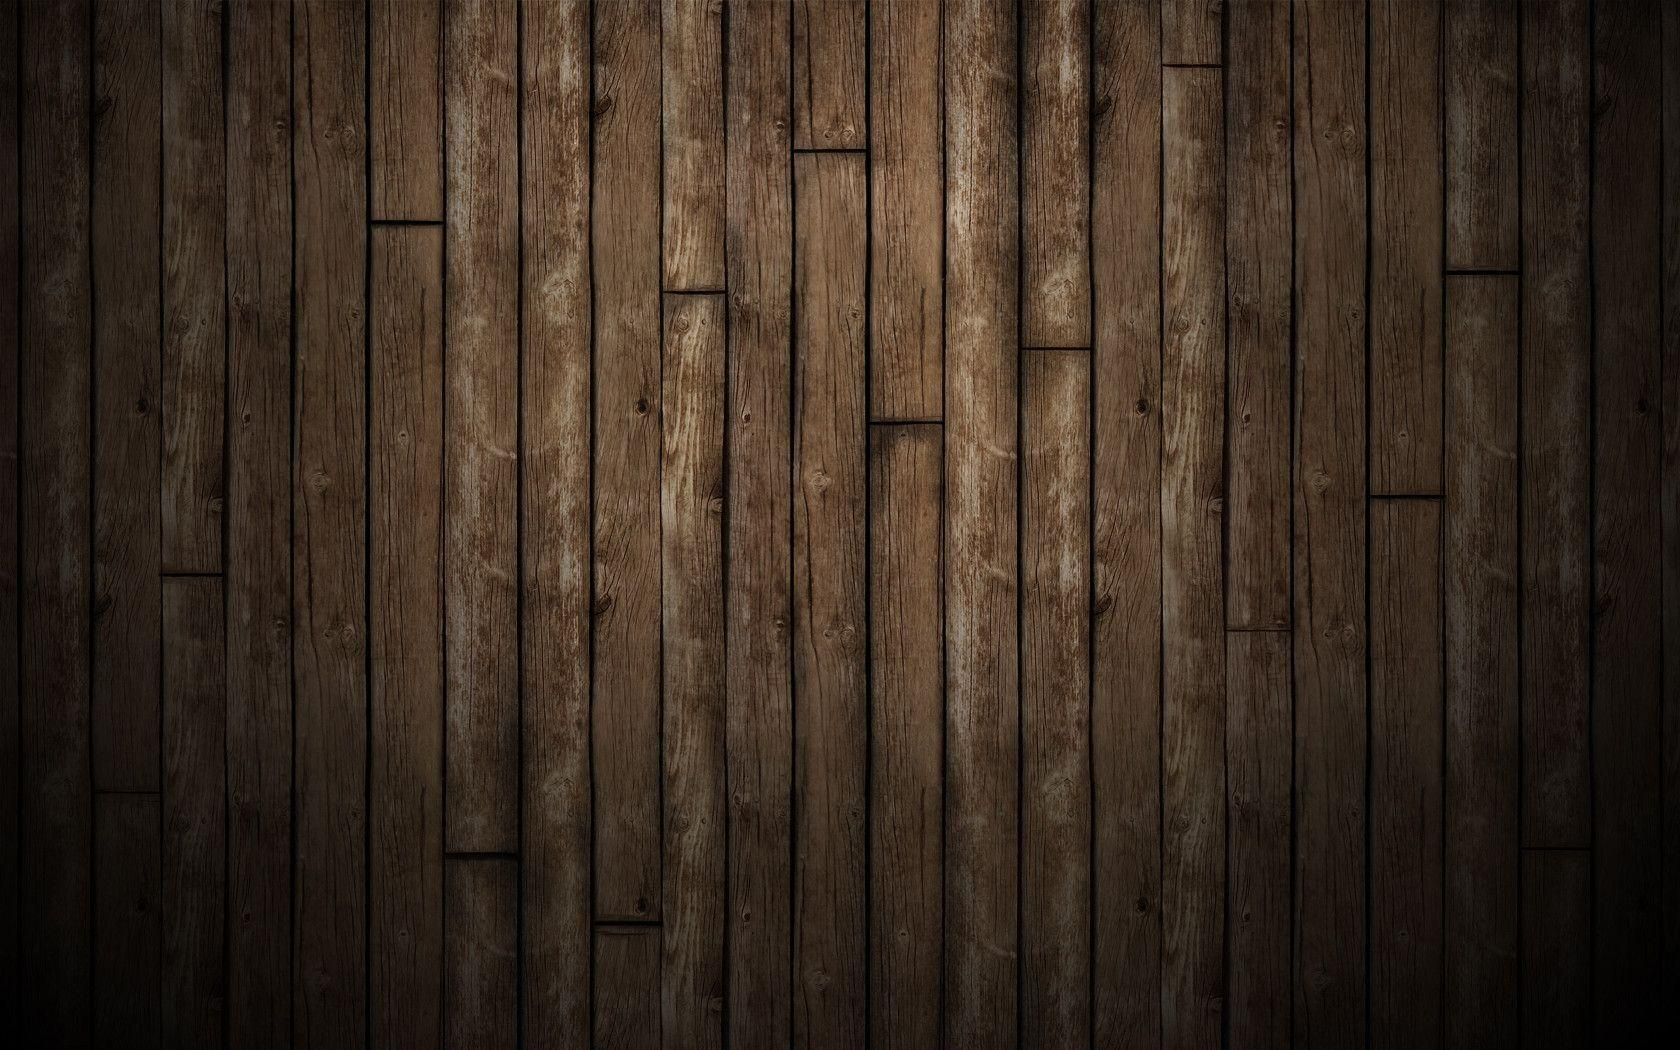 HD Wood Backgrounds 1680x1050